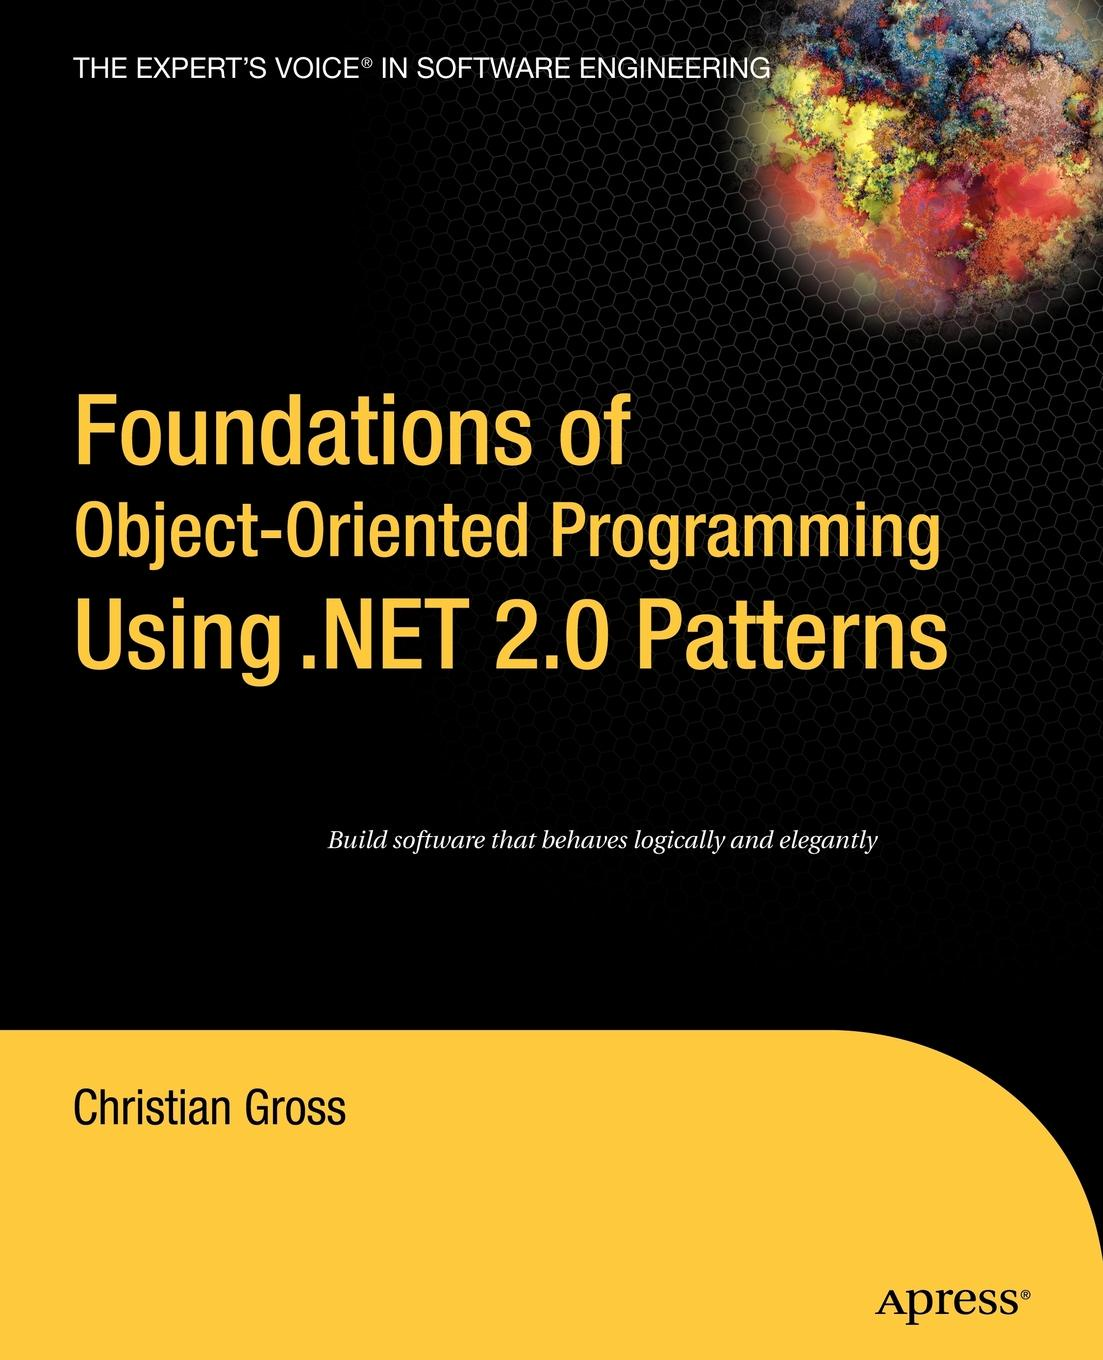 Christian Gross Foundations of object-oriented programming using .net 2.0 patterns christian gross foundations of object oriented programming using net 2 0 patterns